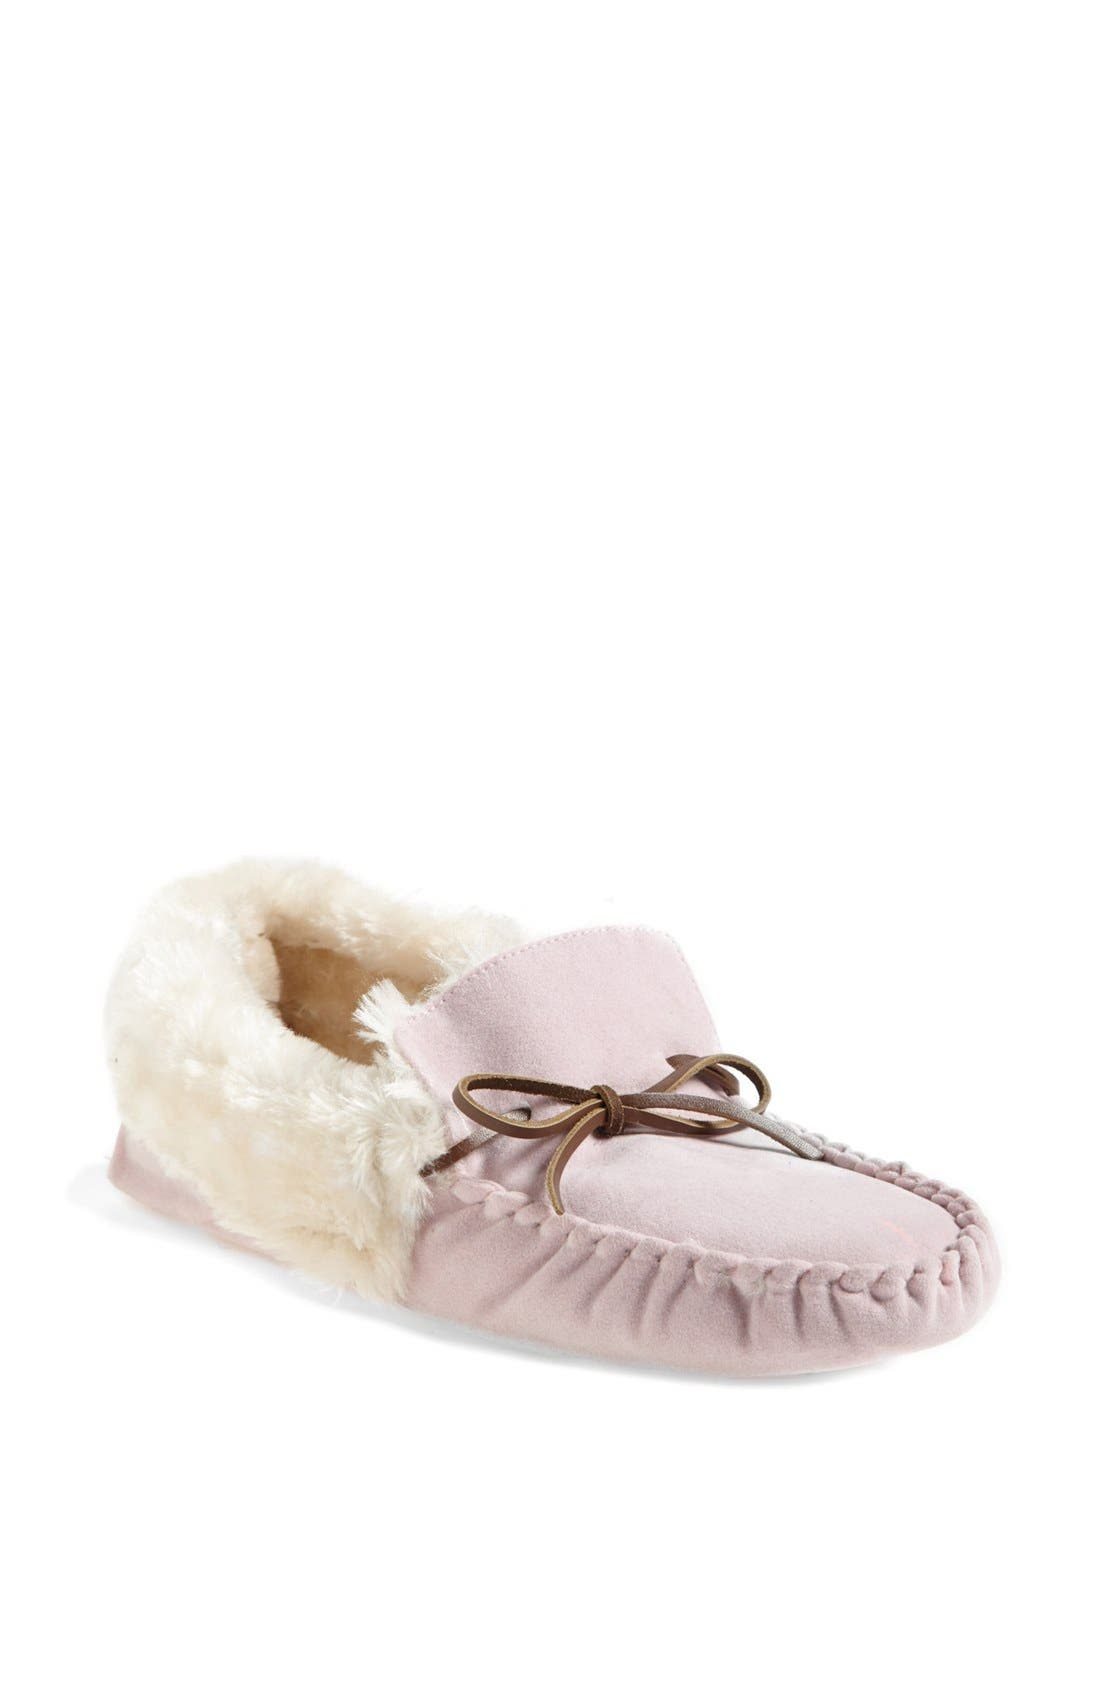 Alternate Image 1 Selected - Nordstrom Moccasin Slipper